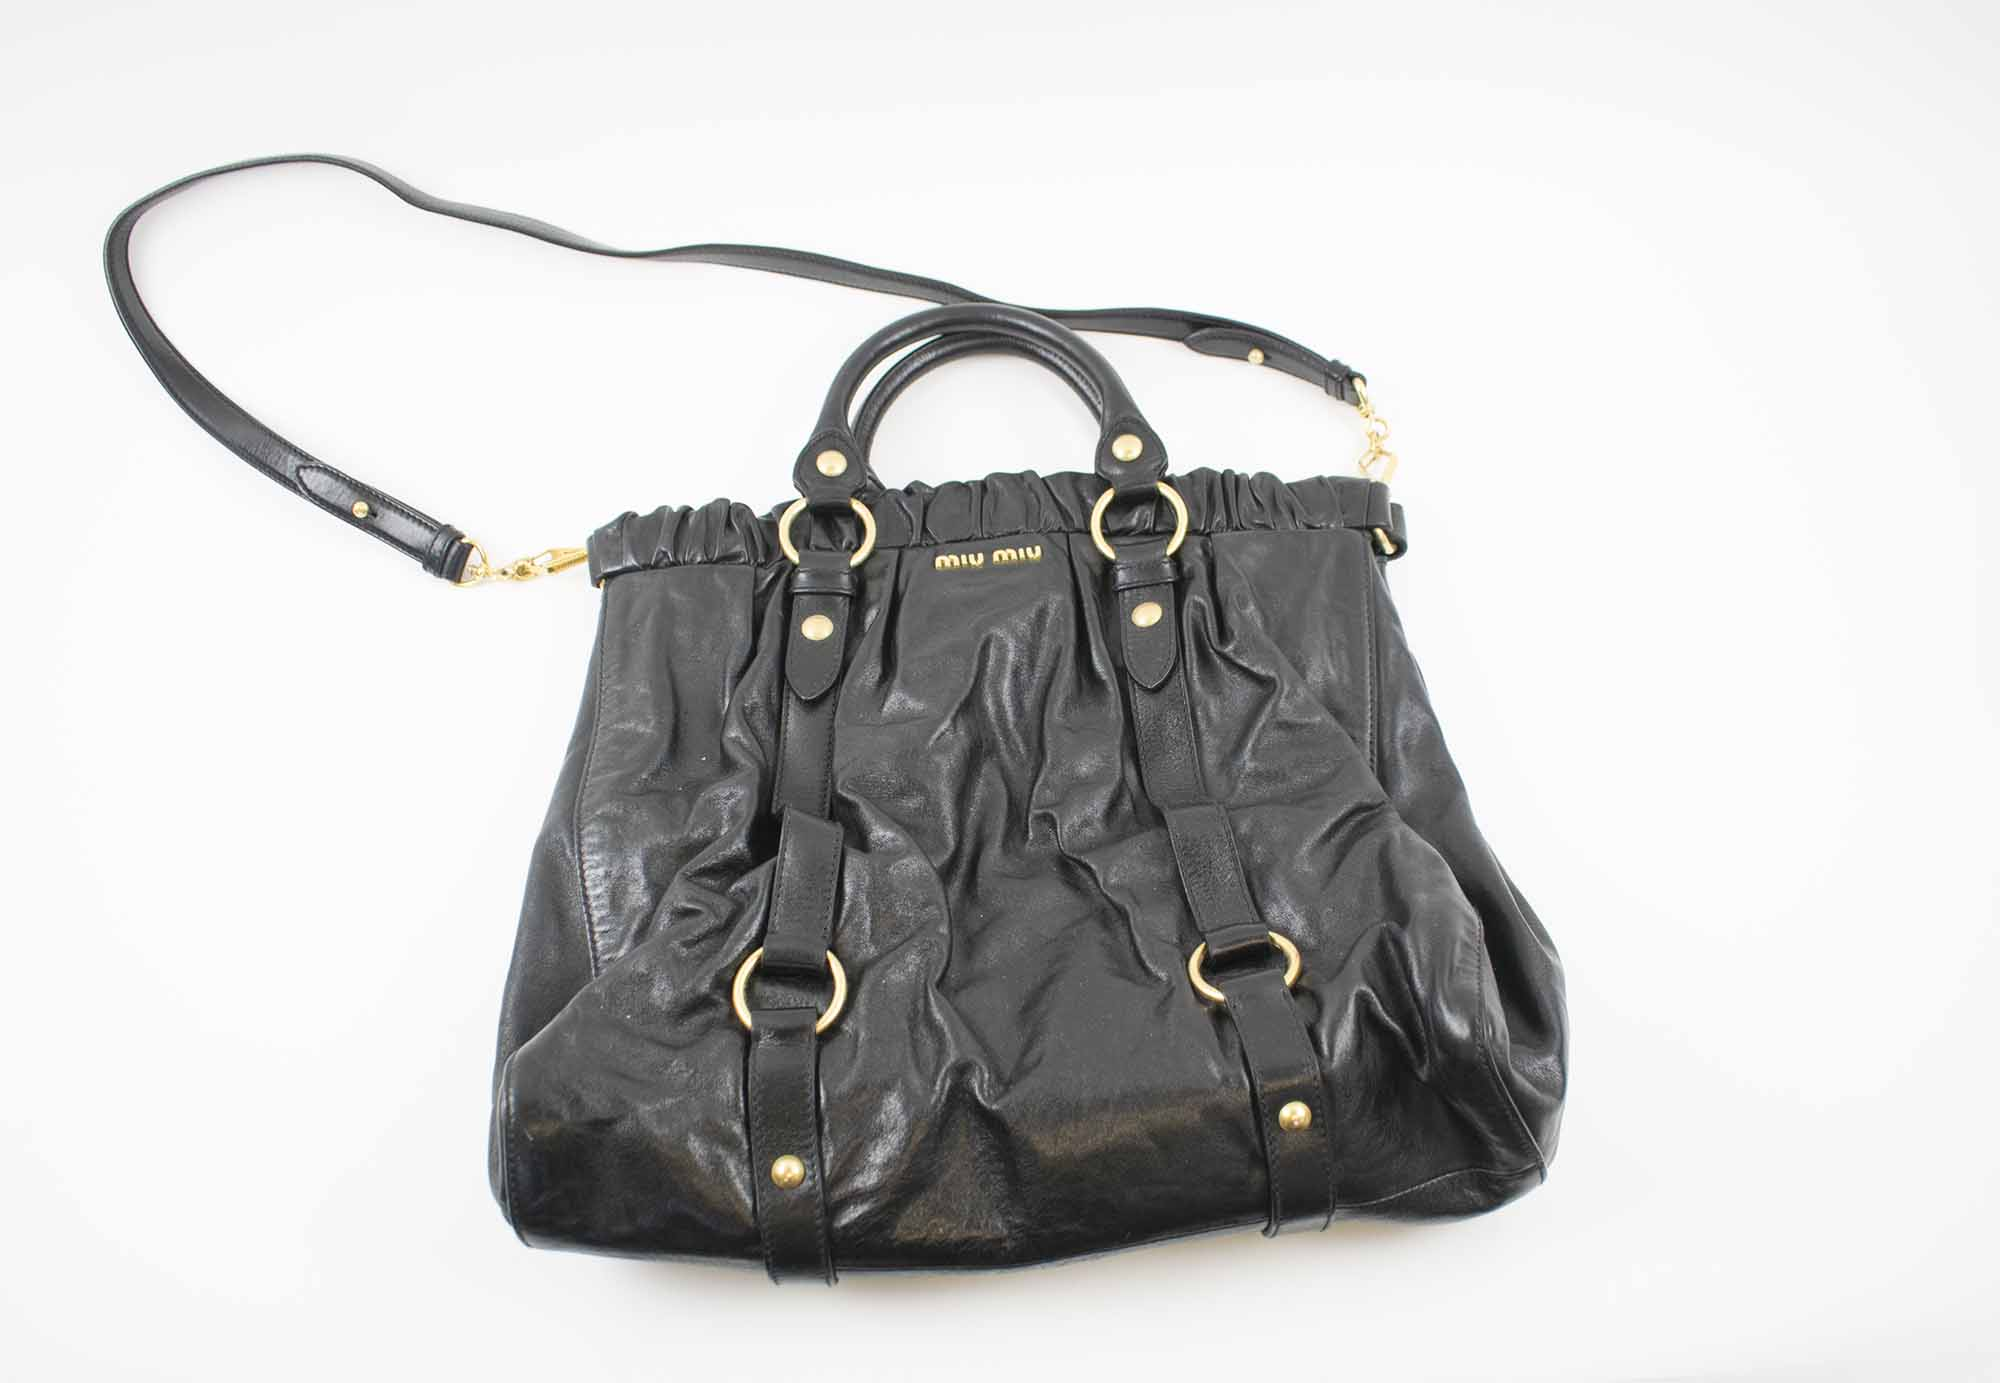 d90b9f280077 MIU MIU VITELLO LUX GATHERED TOTE BAG